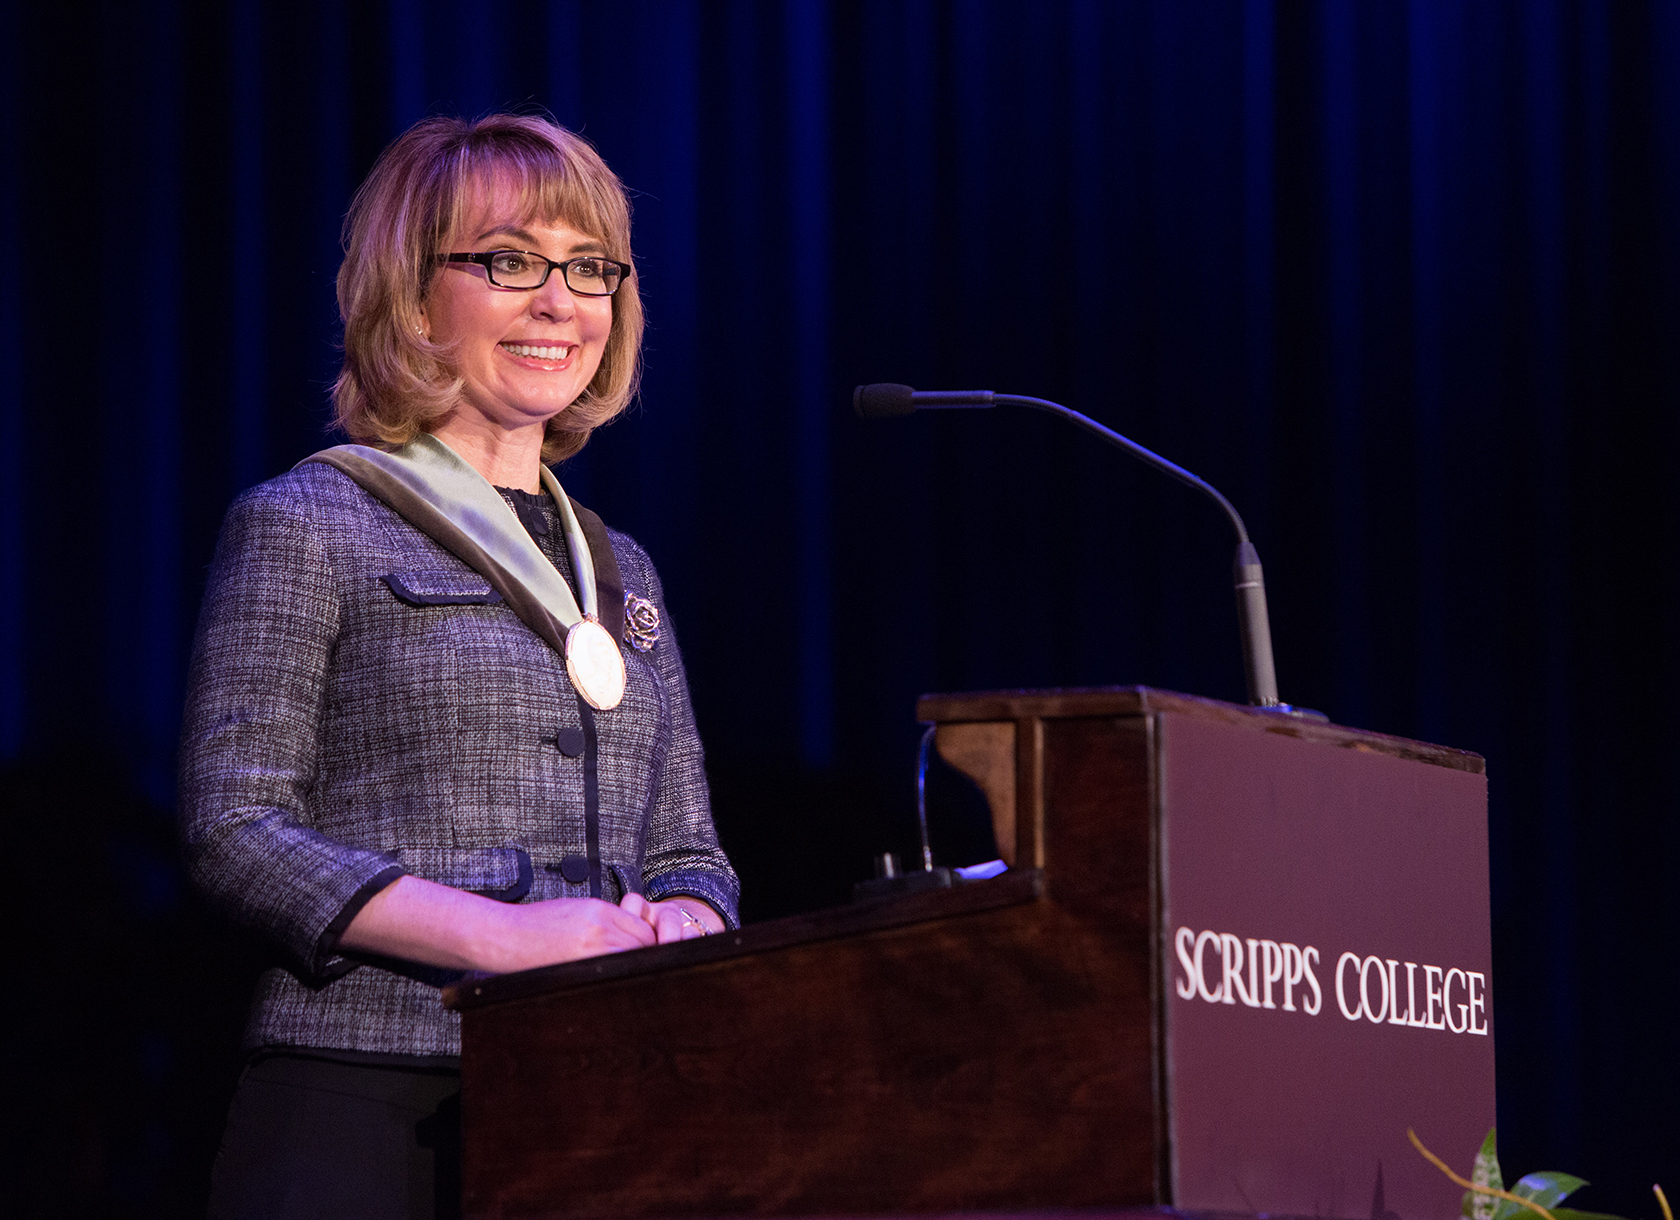 A white woman with short blonde hair and glasses stands behind a Scripps College podium